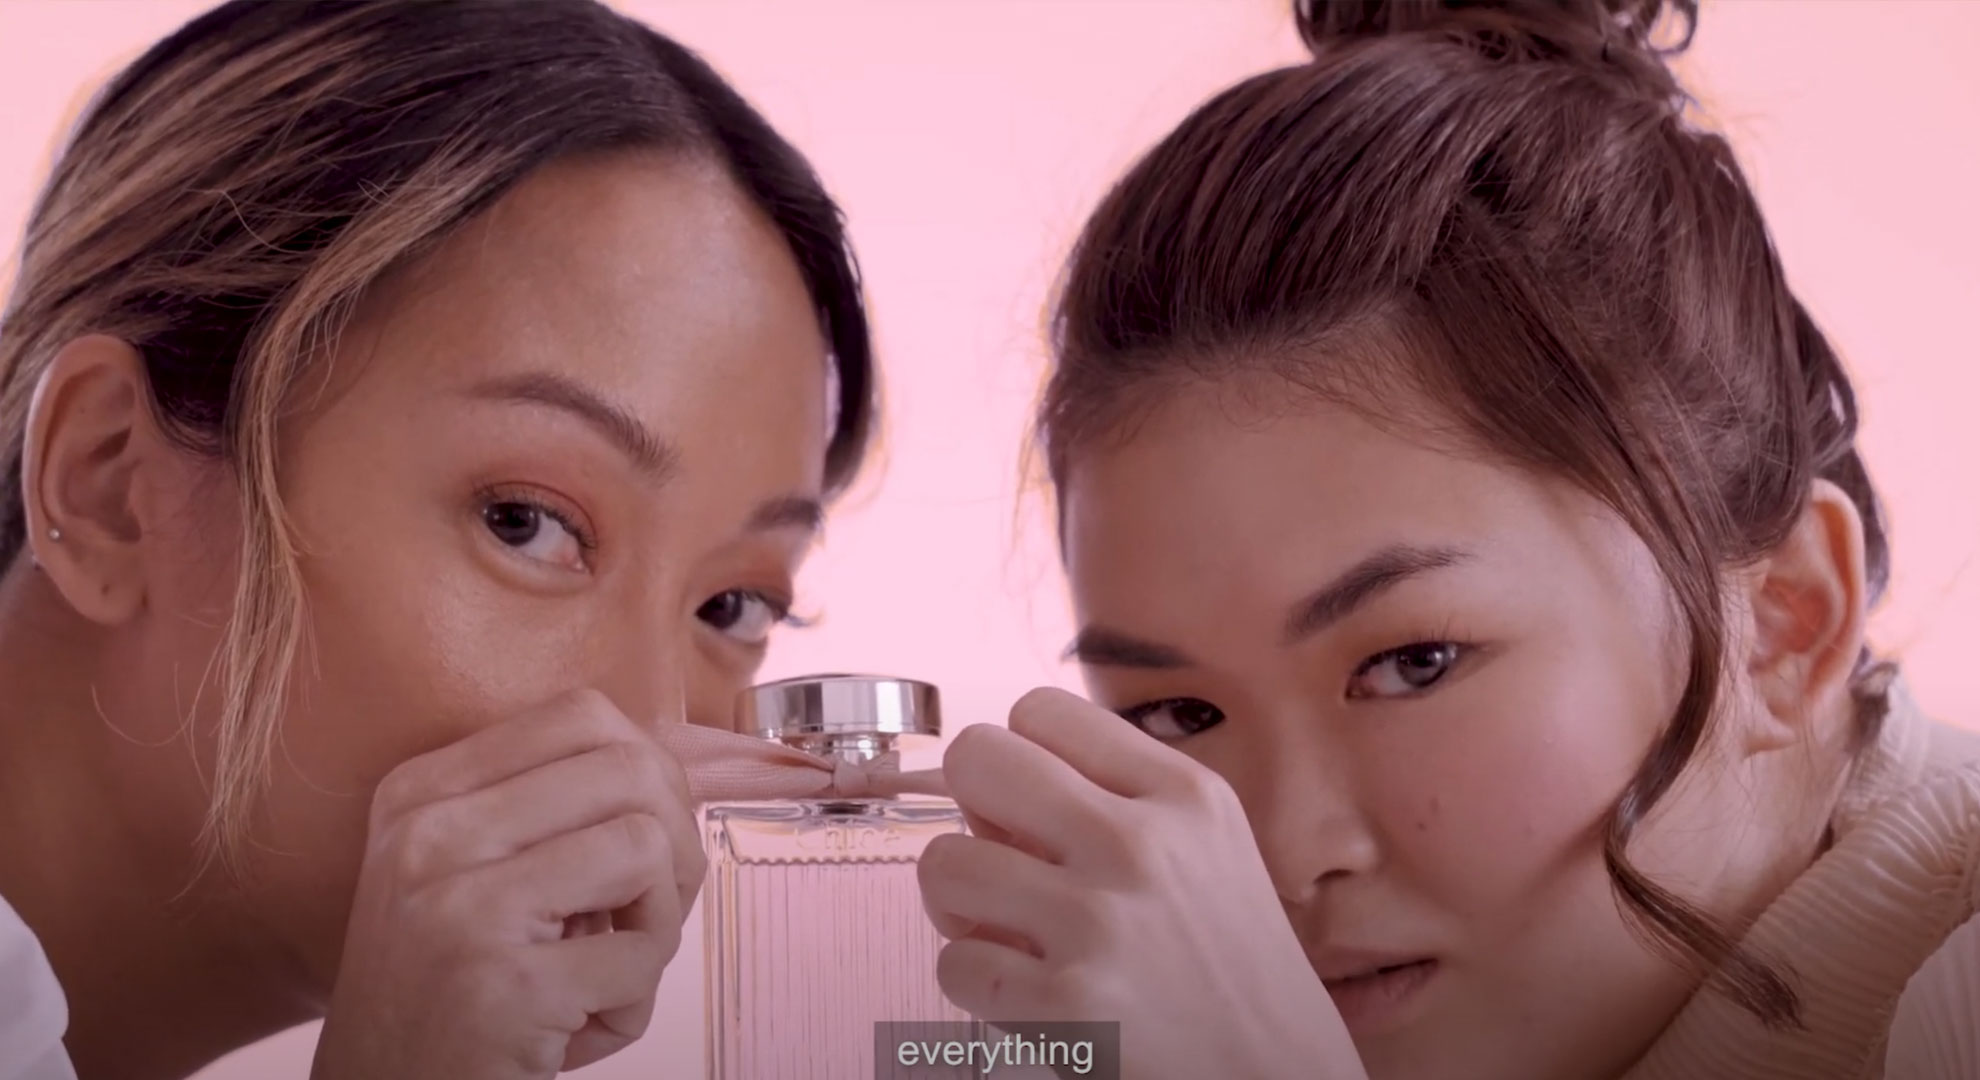 Chloé Perfume Just Made A Rose Scent Cool Girls Can't Get Enough Of